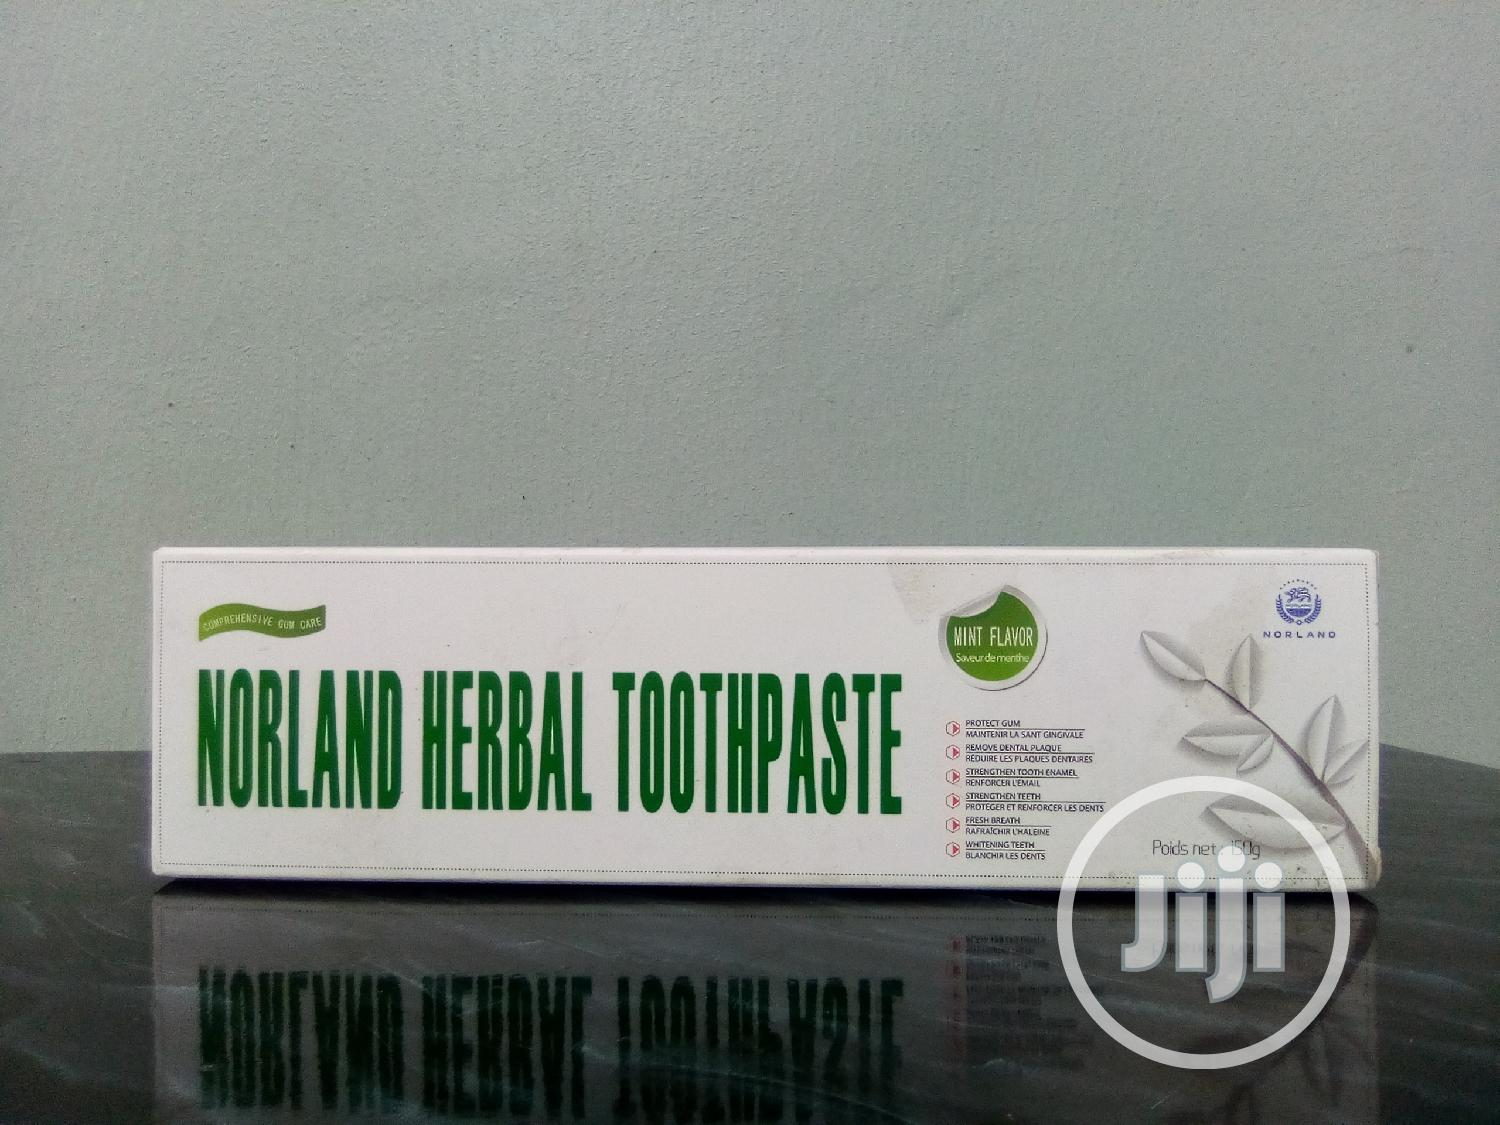 Cure Tooth Ache With Norland Herbal Toothpaste